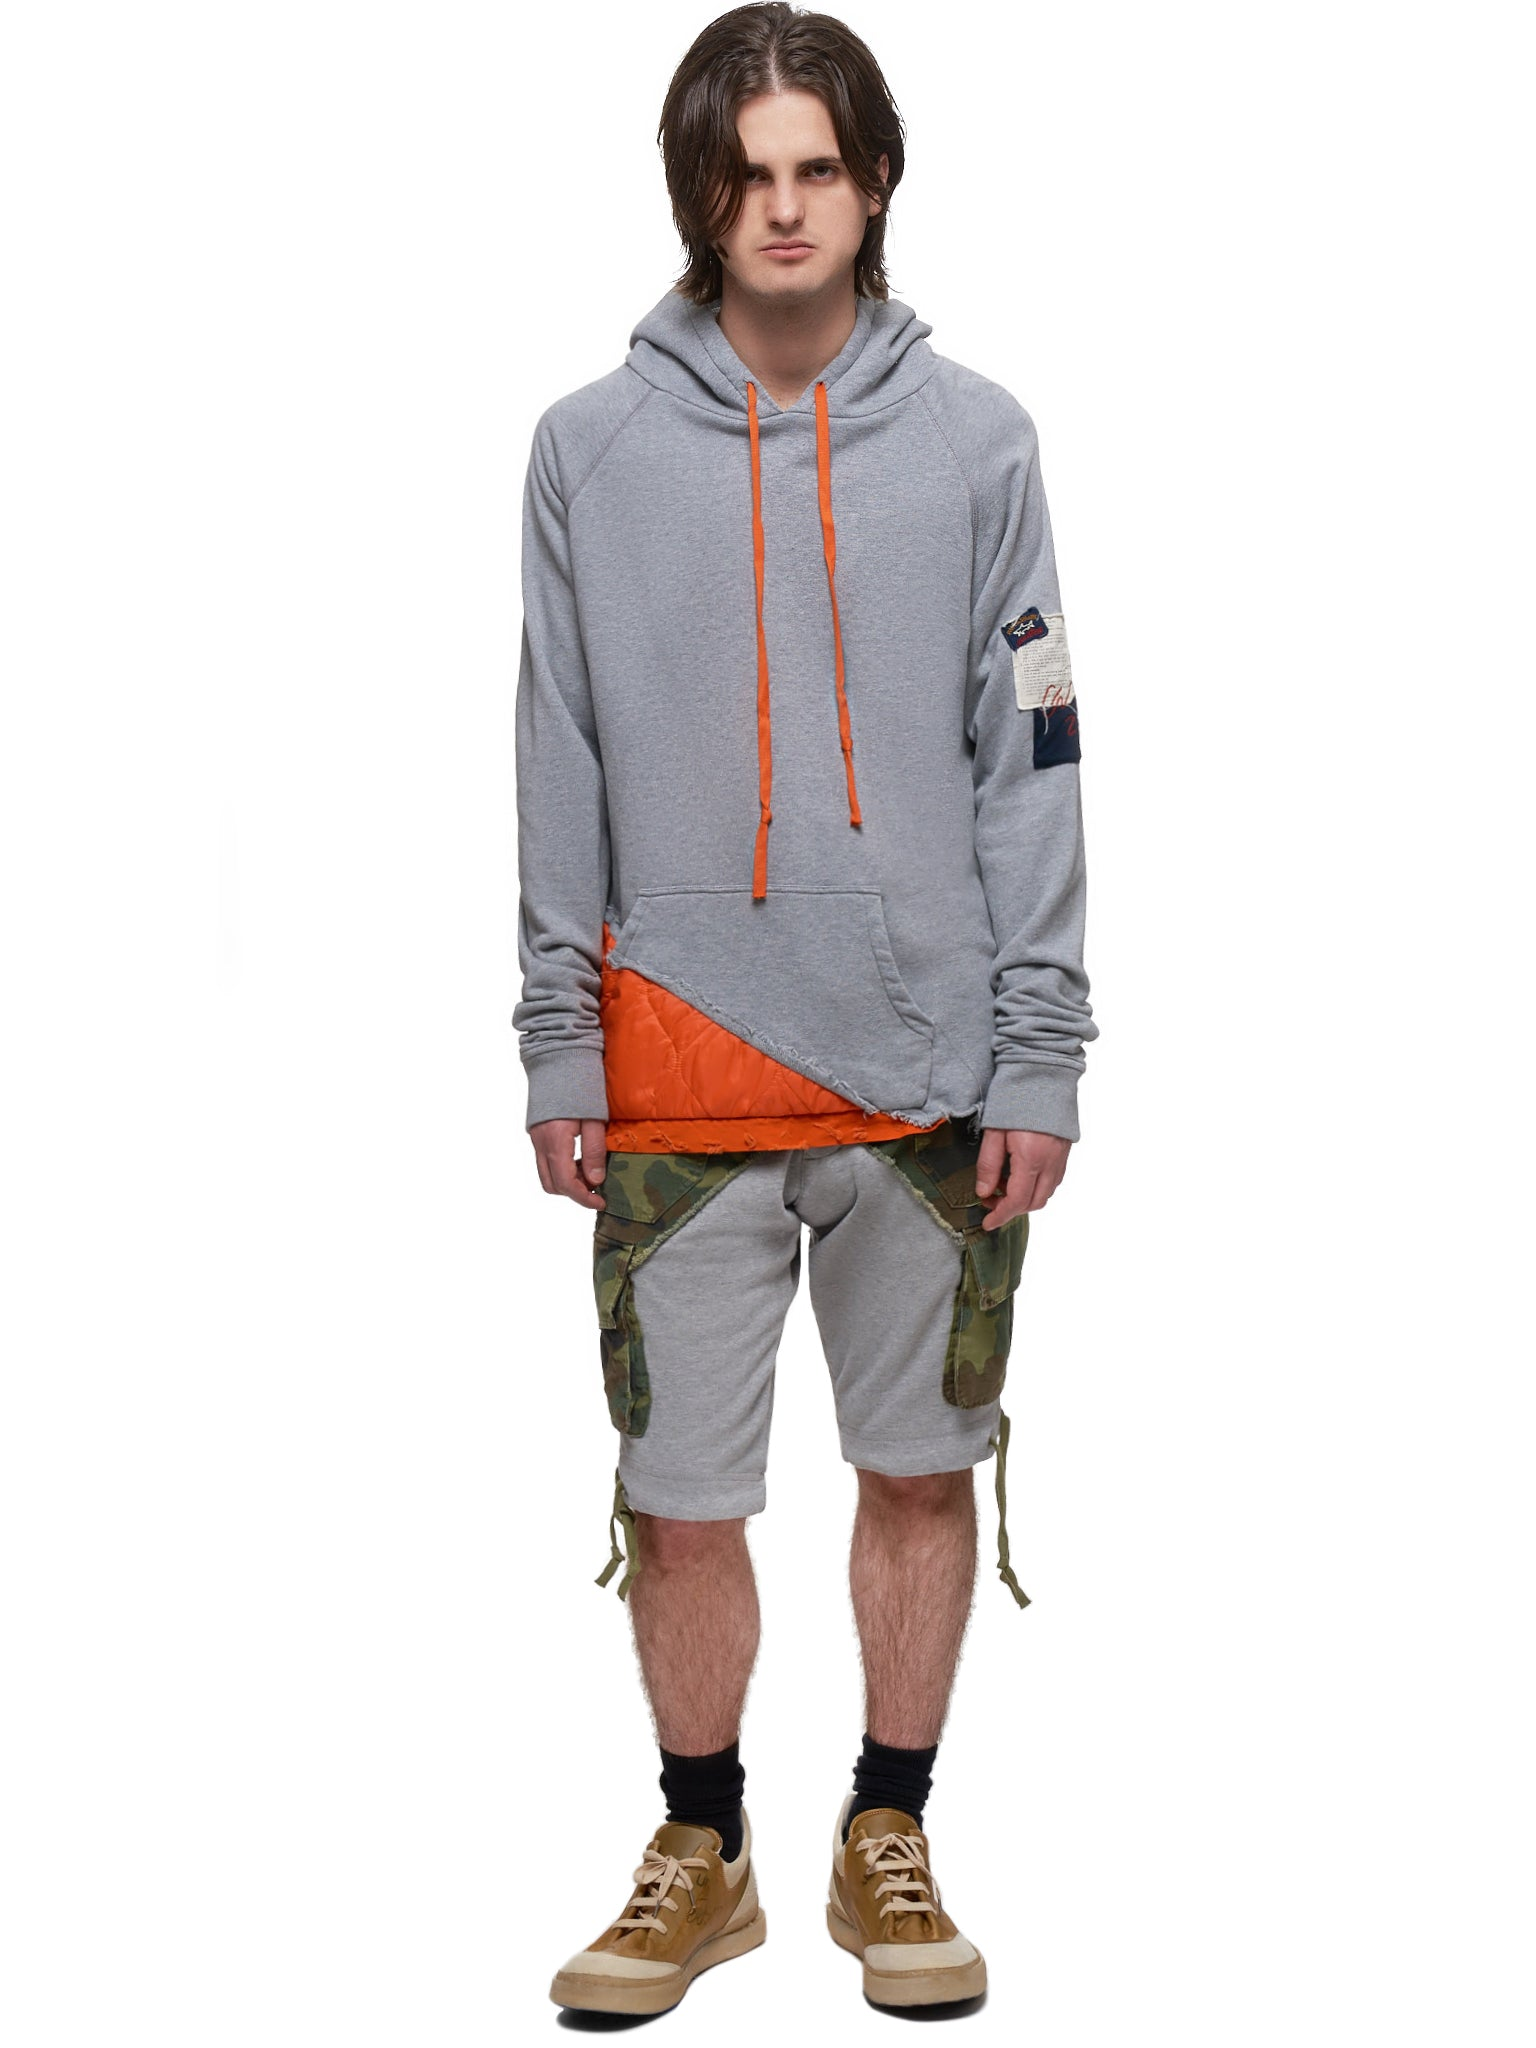 Paul & Shark by Greg Lauren Hoodie - Hlorenzo Style